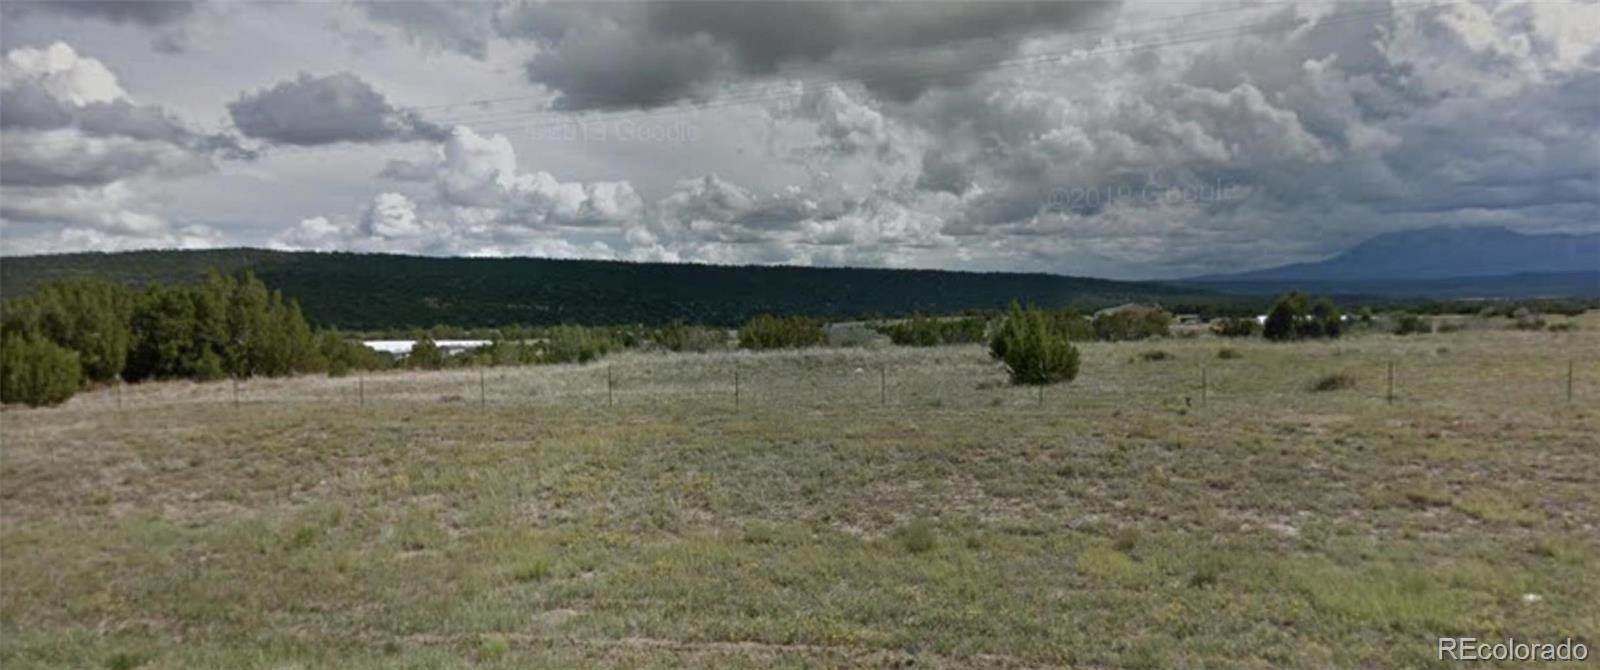 Land for Sale at Highway 160 Walsenburg, Colorado 81089 United States